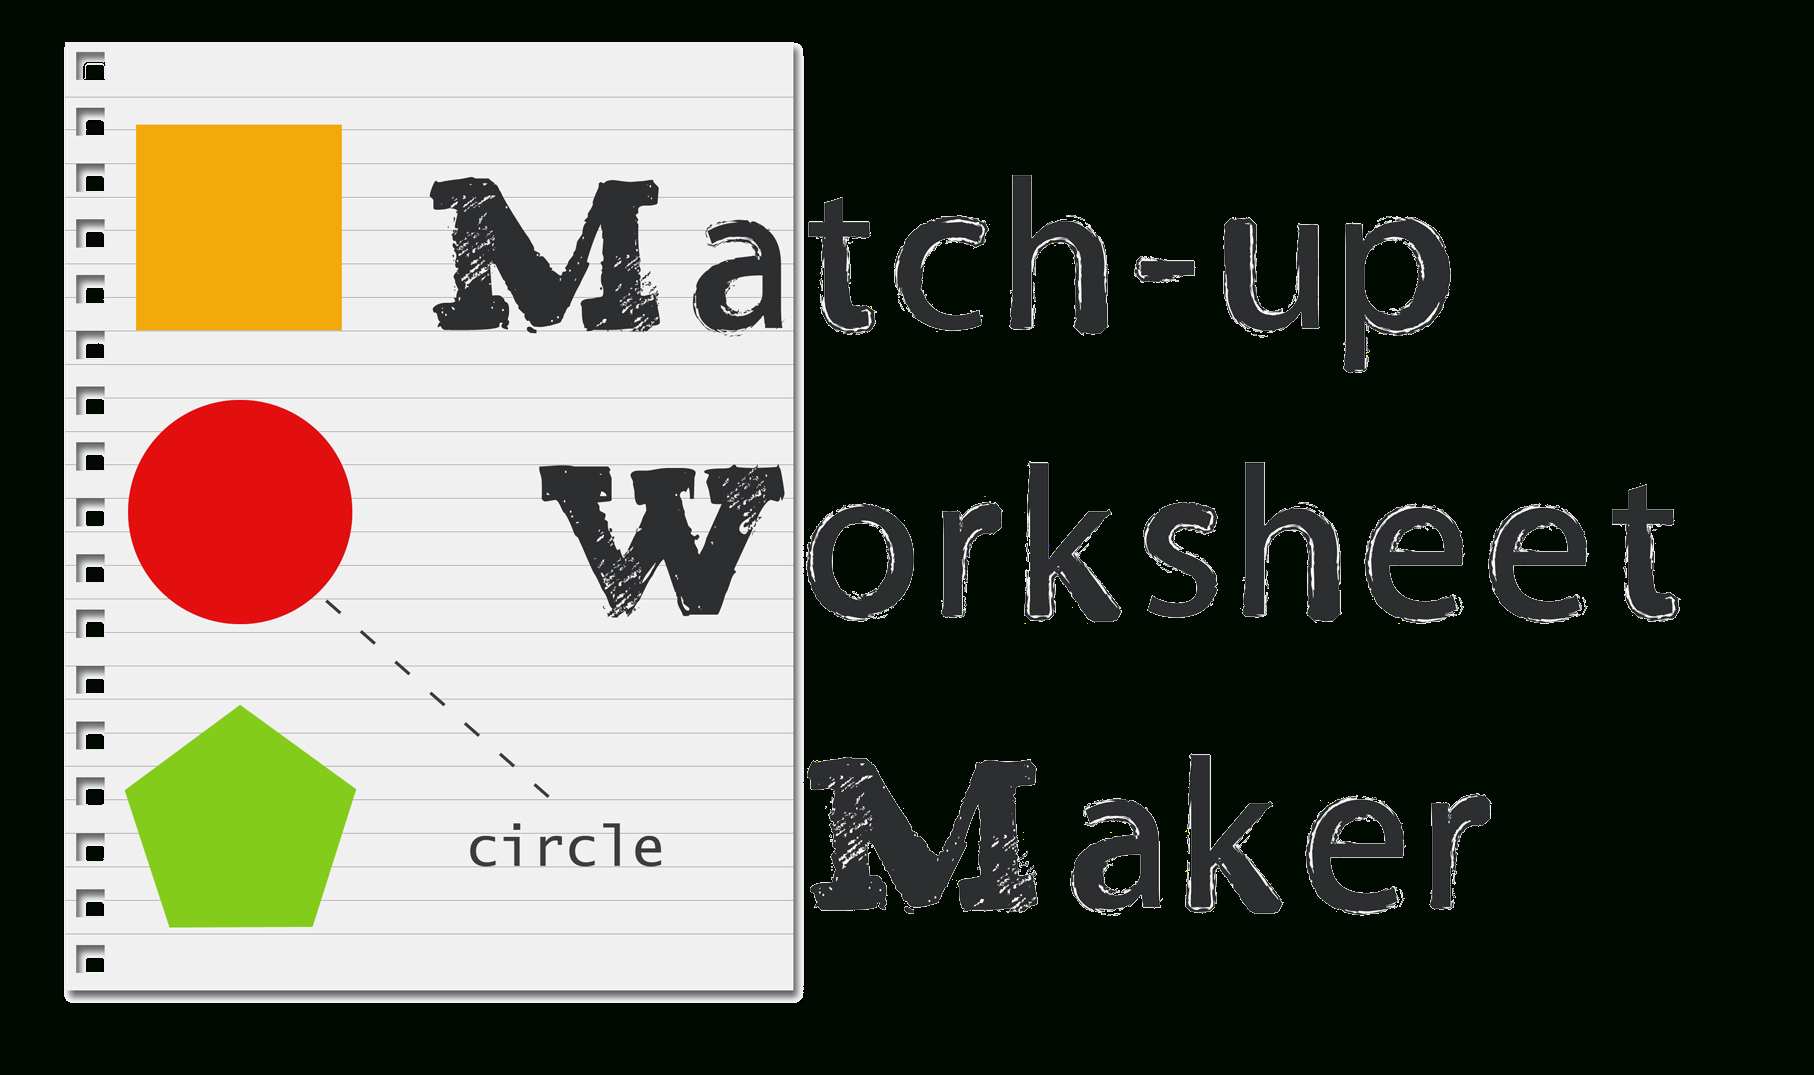 Matching Worksheet Maker: Create Custom Printable Worksheets - Make | Printable Worksheet Maker